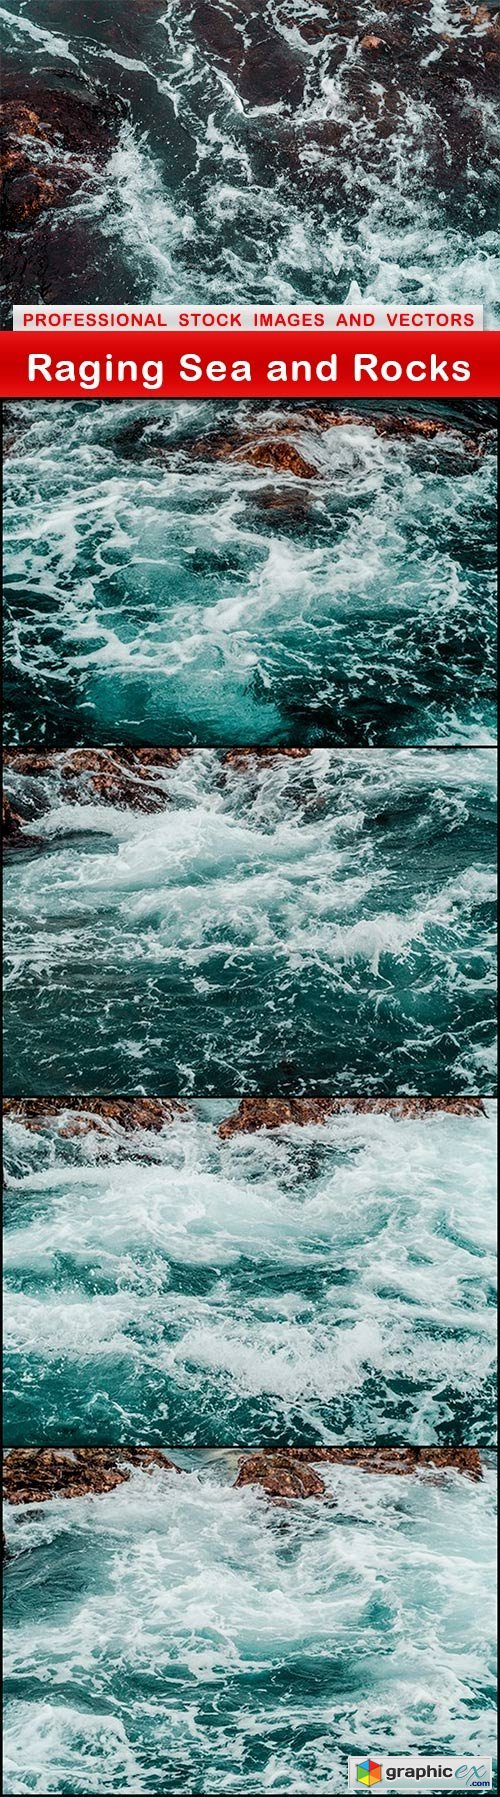 Raging Sea and Rocks - 5 UHQ JPEG